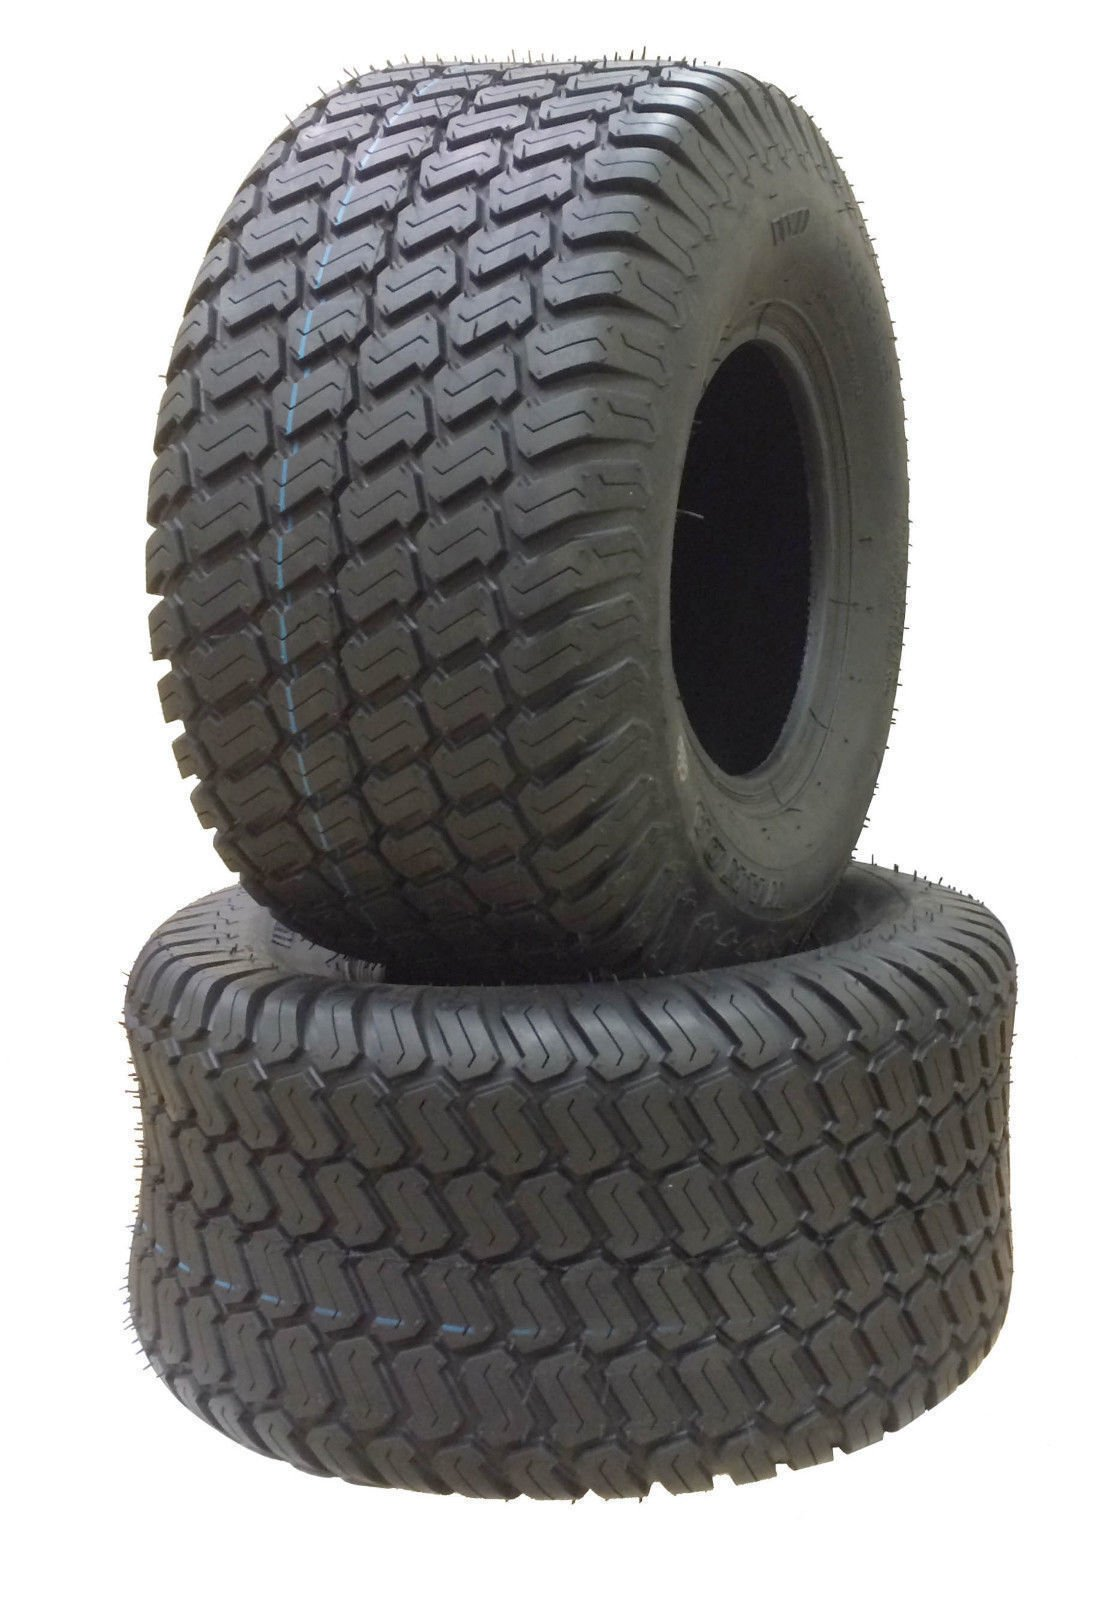 SET OF 2 20X8.00-10 20X8-10 AIRLOC P332 Turf for Zero-Turn Lawn Mowers 4Ply Rated FOR A 10''RIM